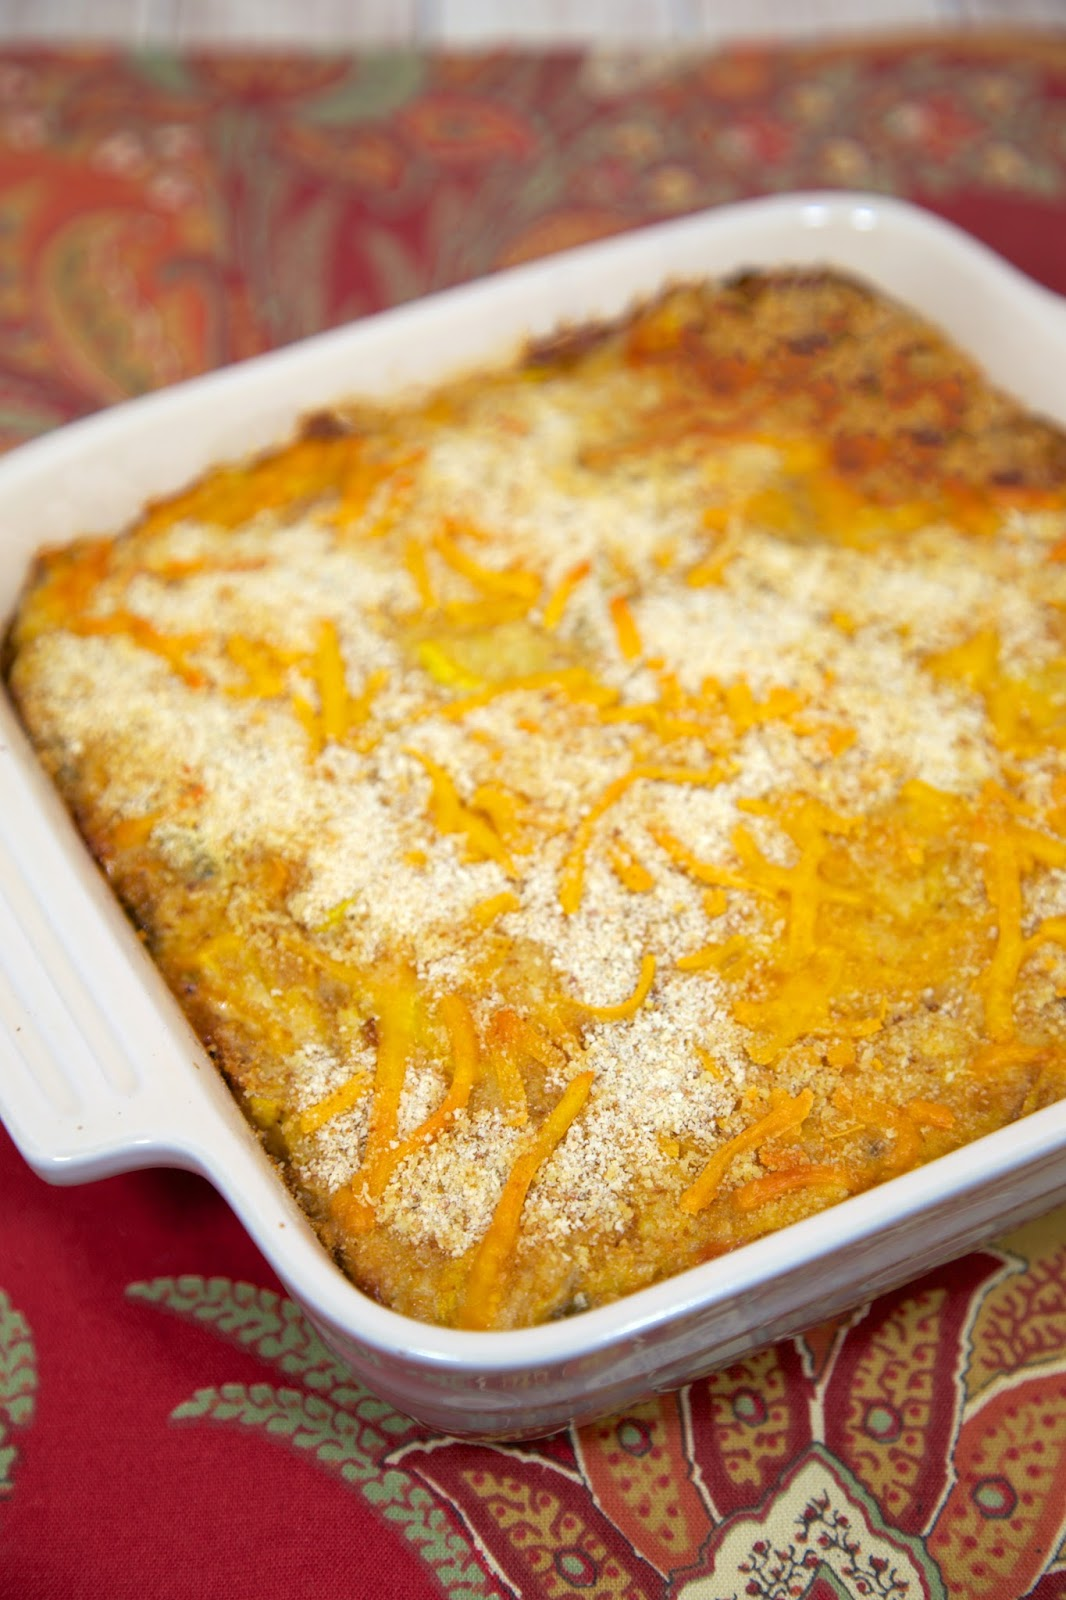 Squash Casserole - squash, peppers, onions, cheese - a family tradition at Thanksgiving! Can make ahead of time and refrigerate until ready to bake.